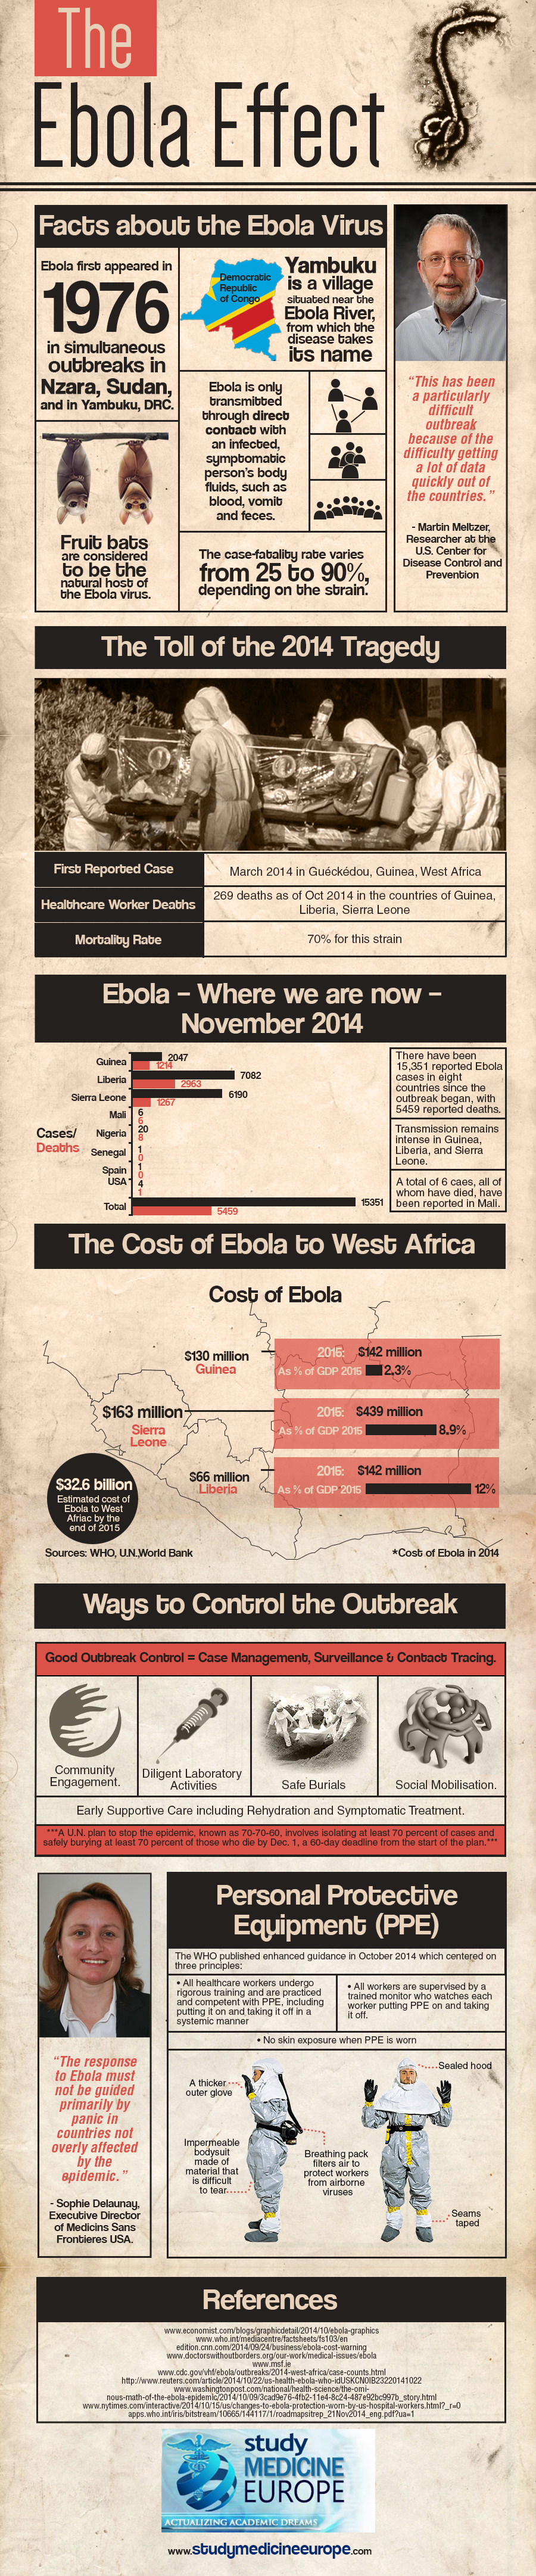 Ebola-Effect-Infographic